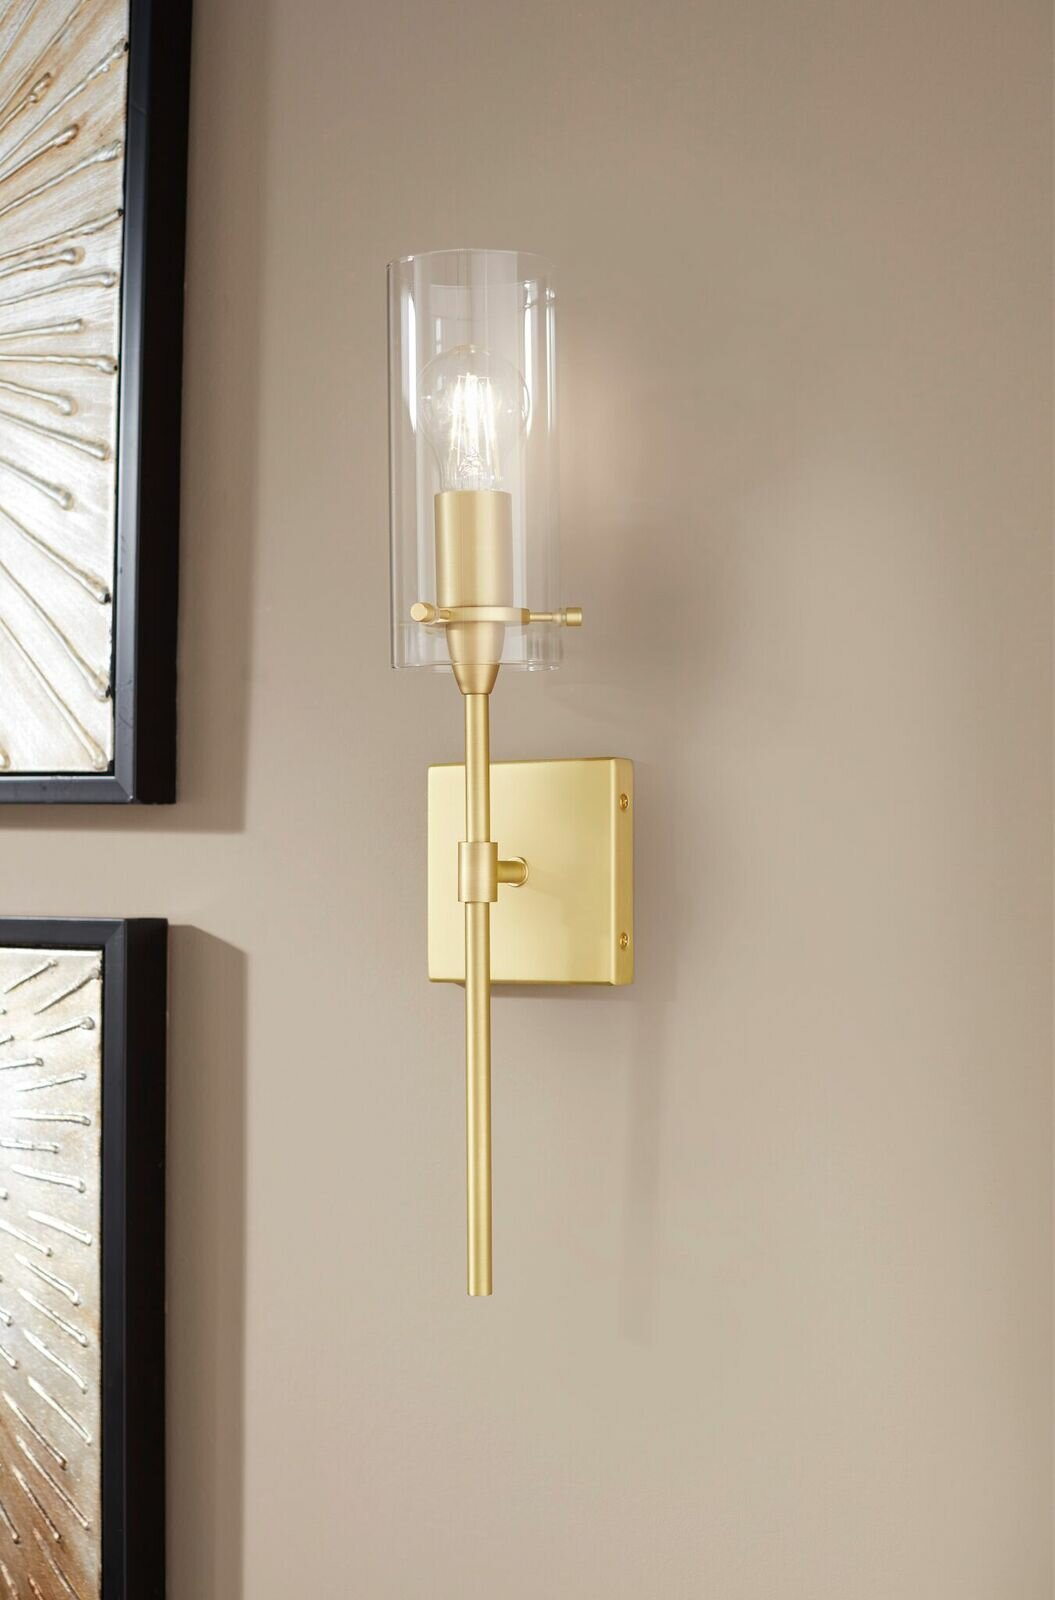 Gold Shade Wallchiere Wall Sconces You Ll Love In 2021 Wayfair